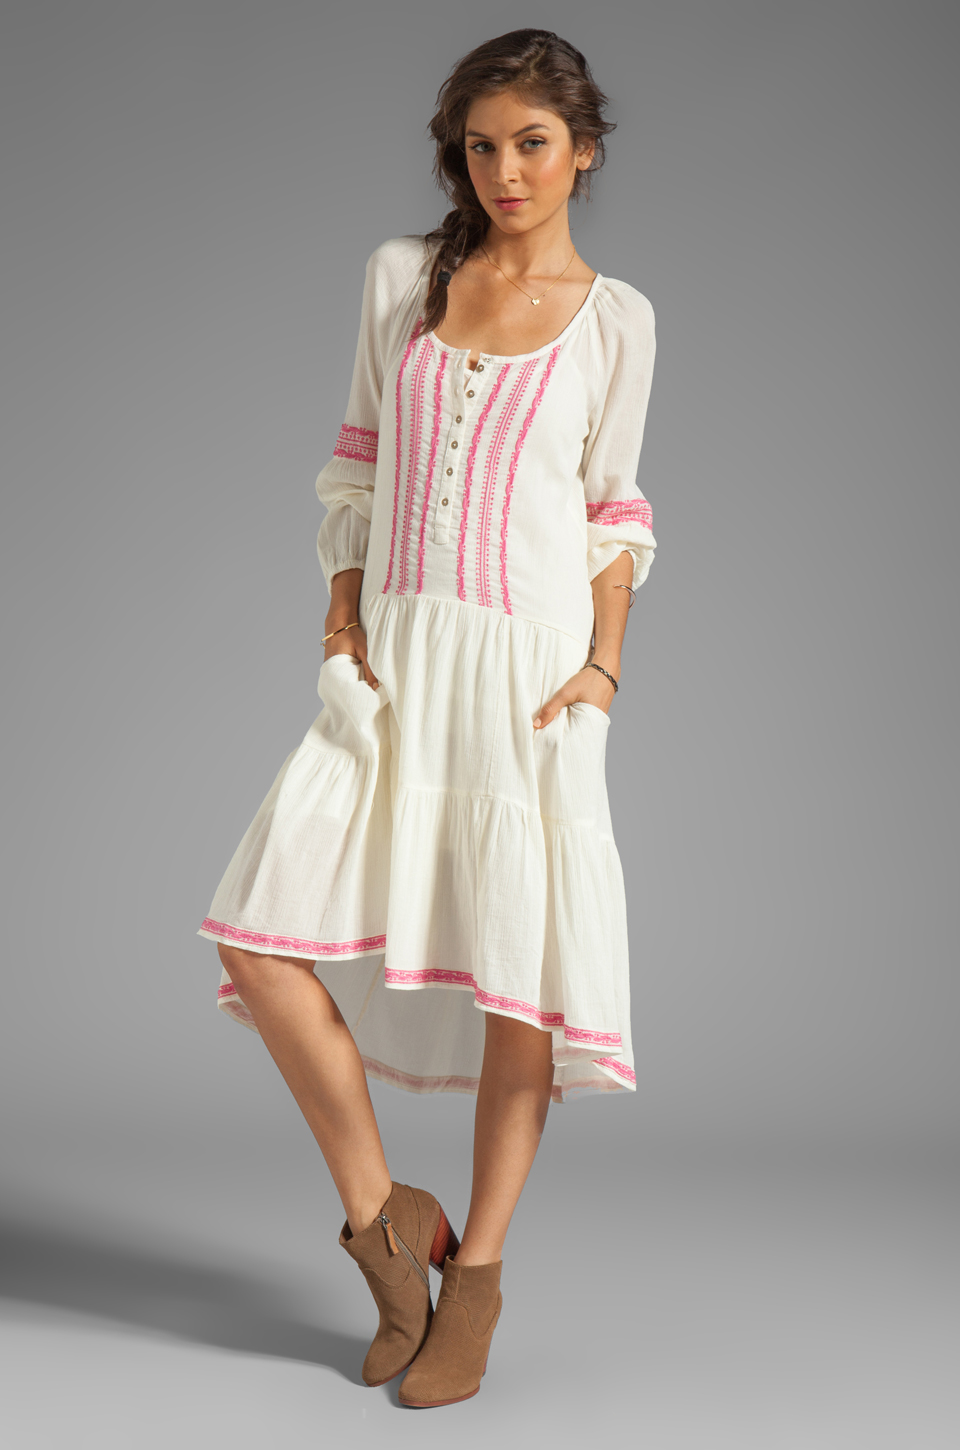 Free People Light Heart Dress in Tea Combo